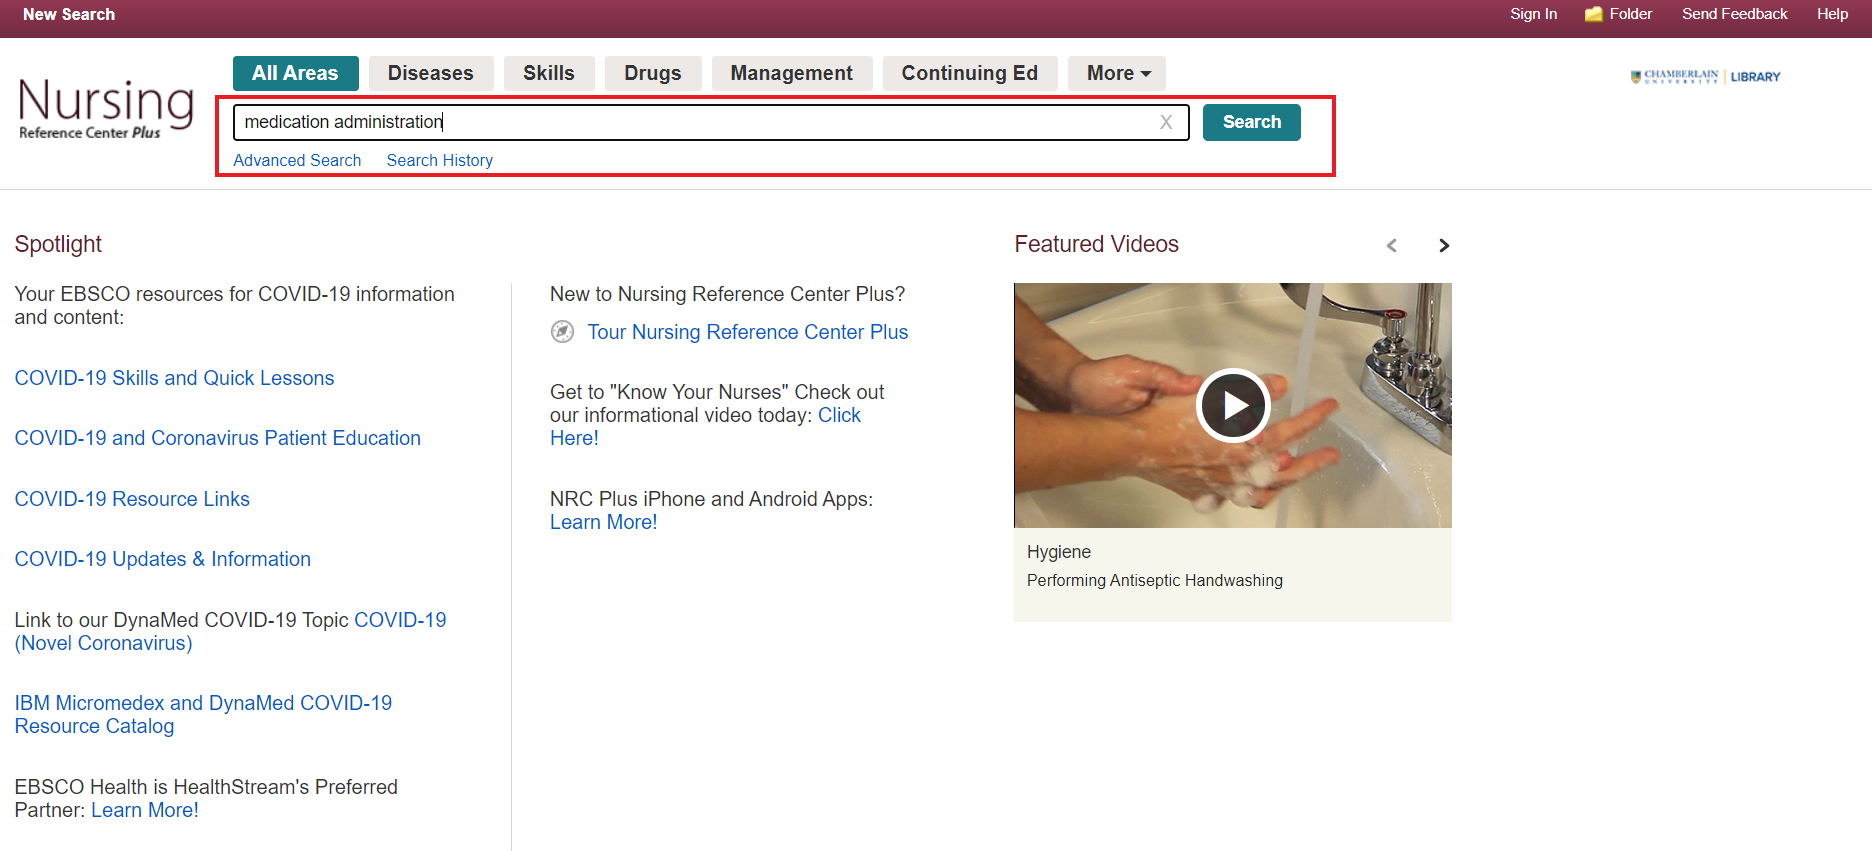 Search for medication administration videos in Nursing Reference Center Plus